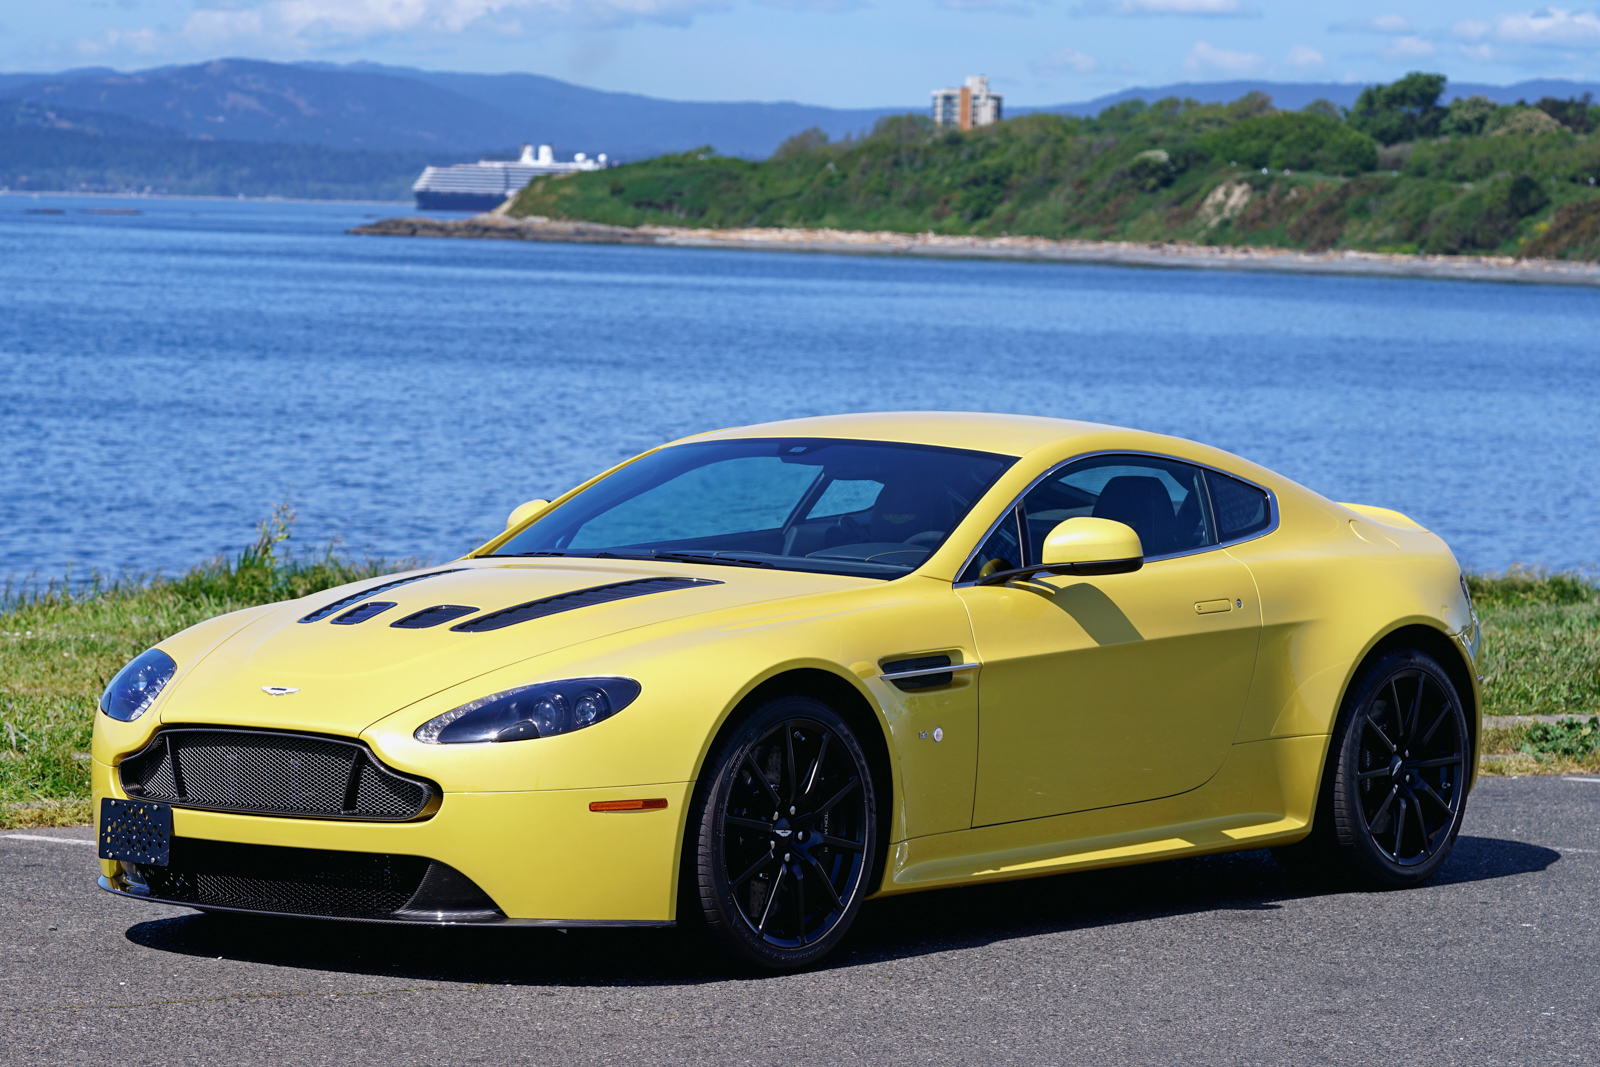 2015 aston martin v12 vantage s coupe for sale | silver arrow cars ltd.